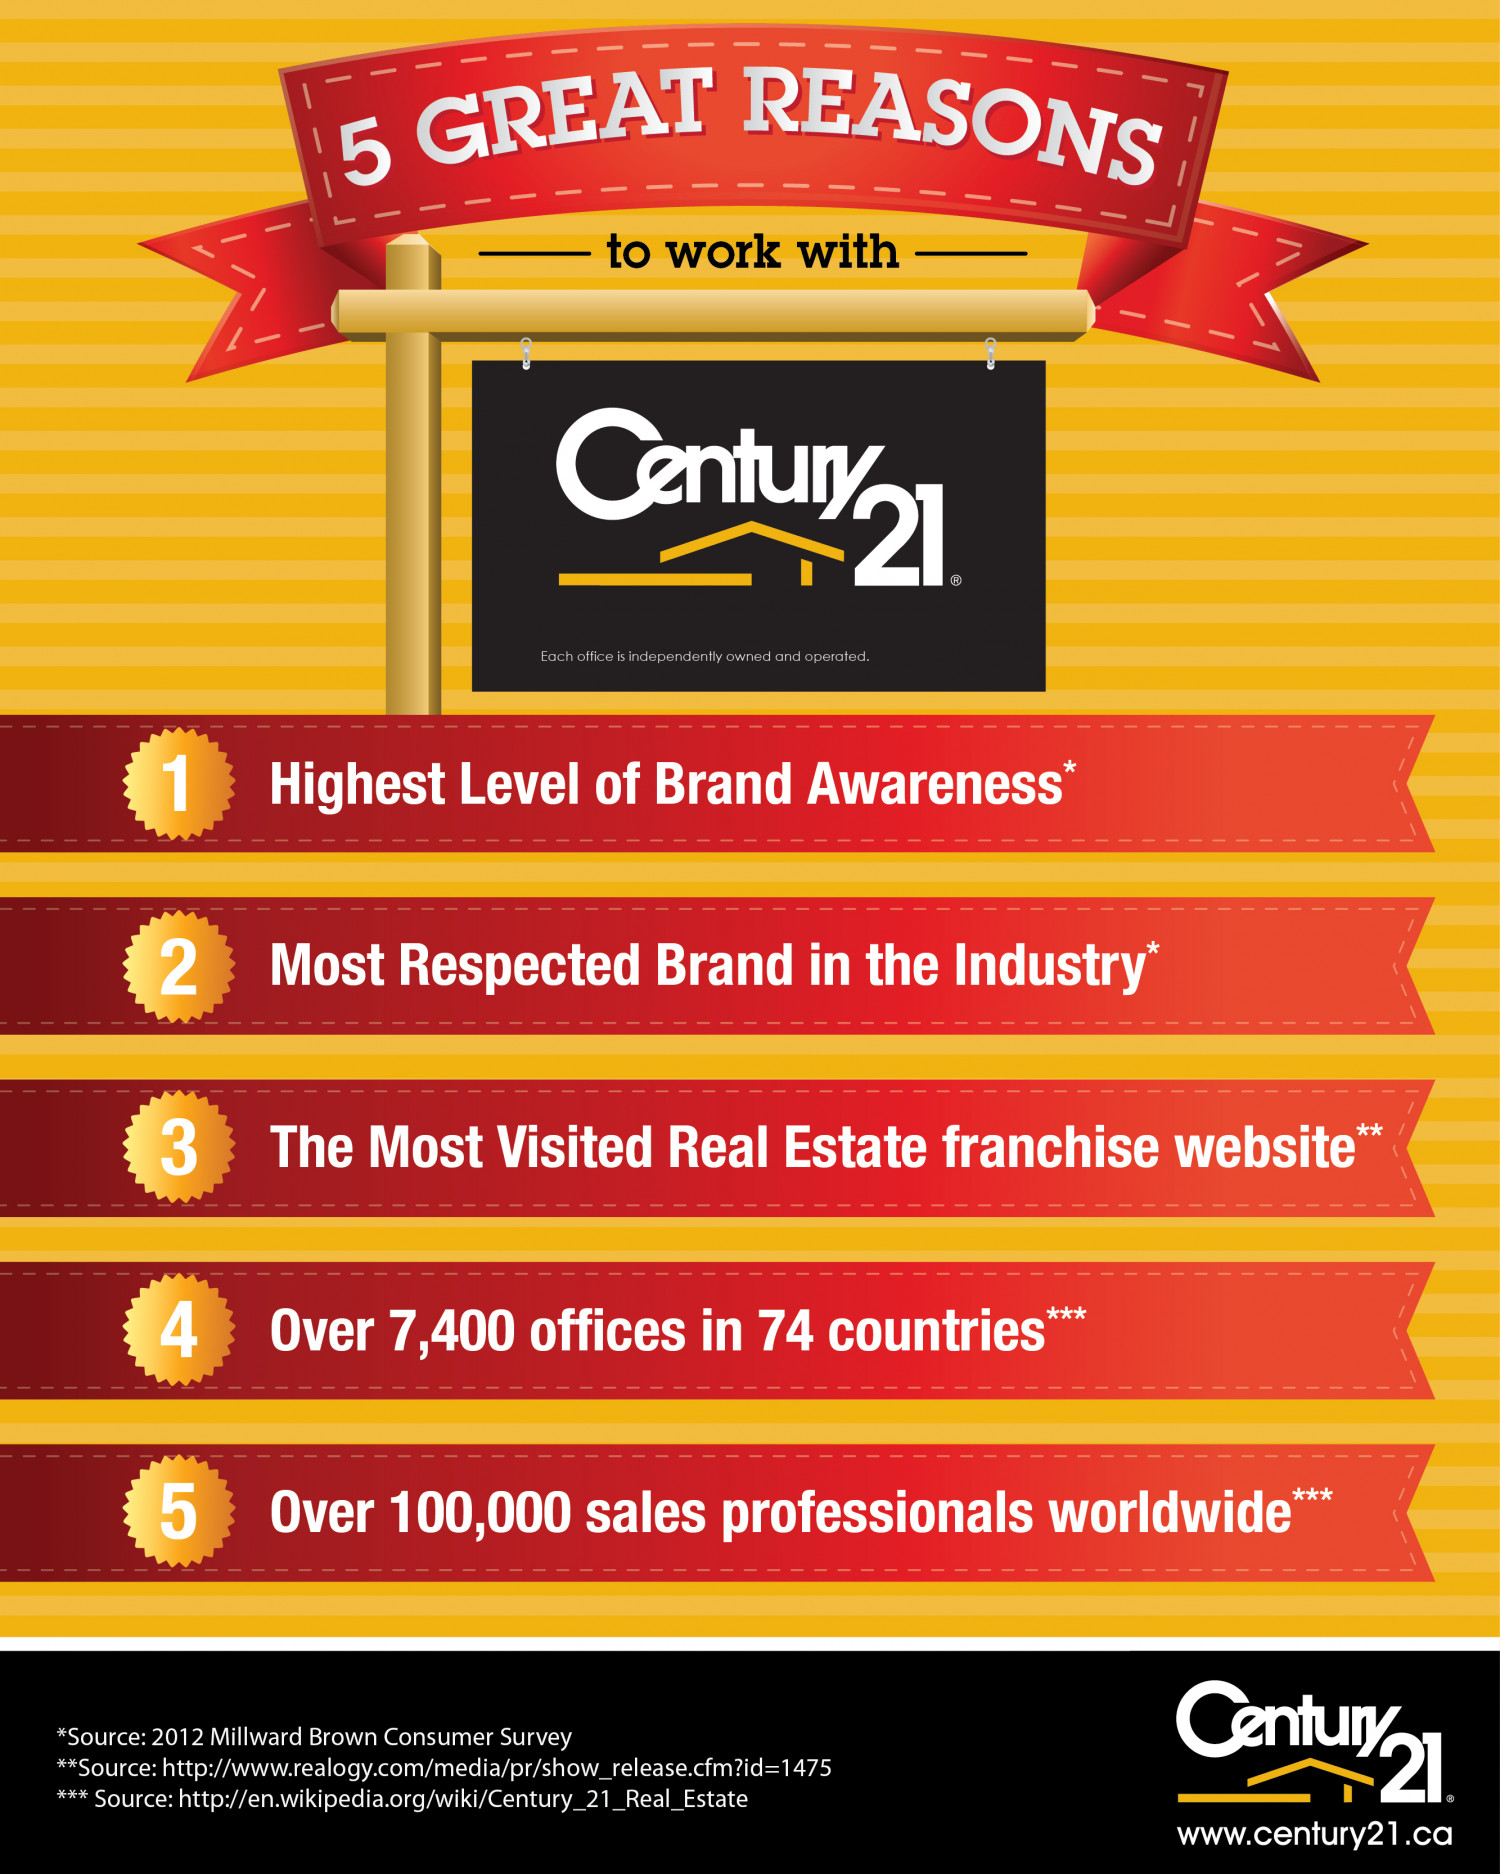 5 Great Reasons to Work With Century 21! Infographic